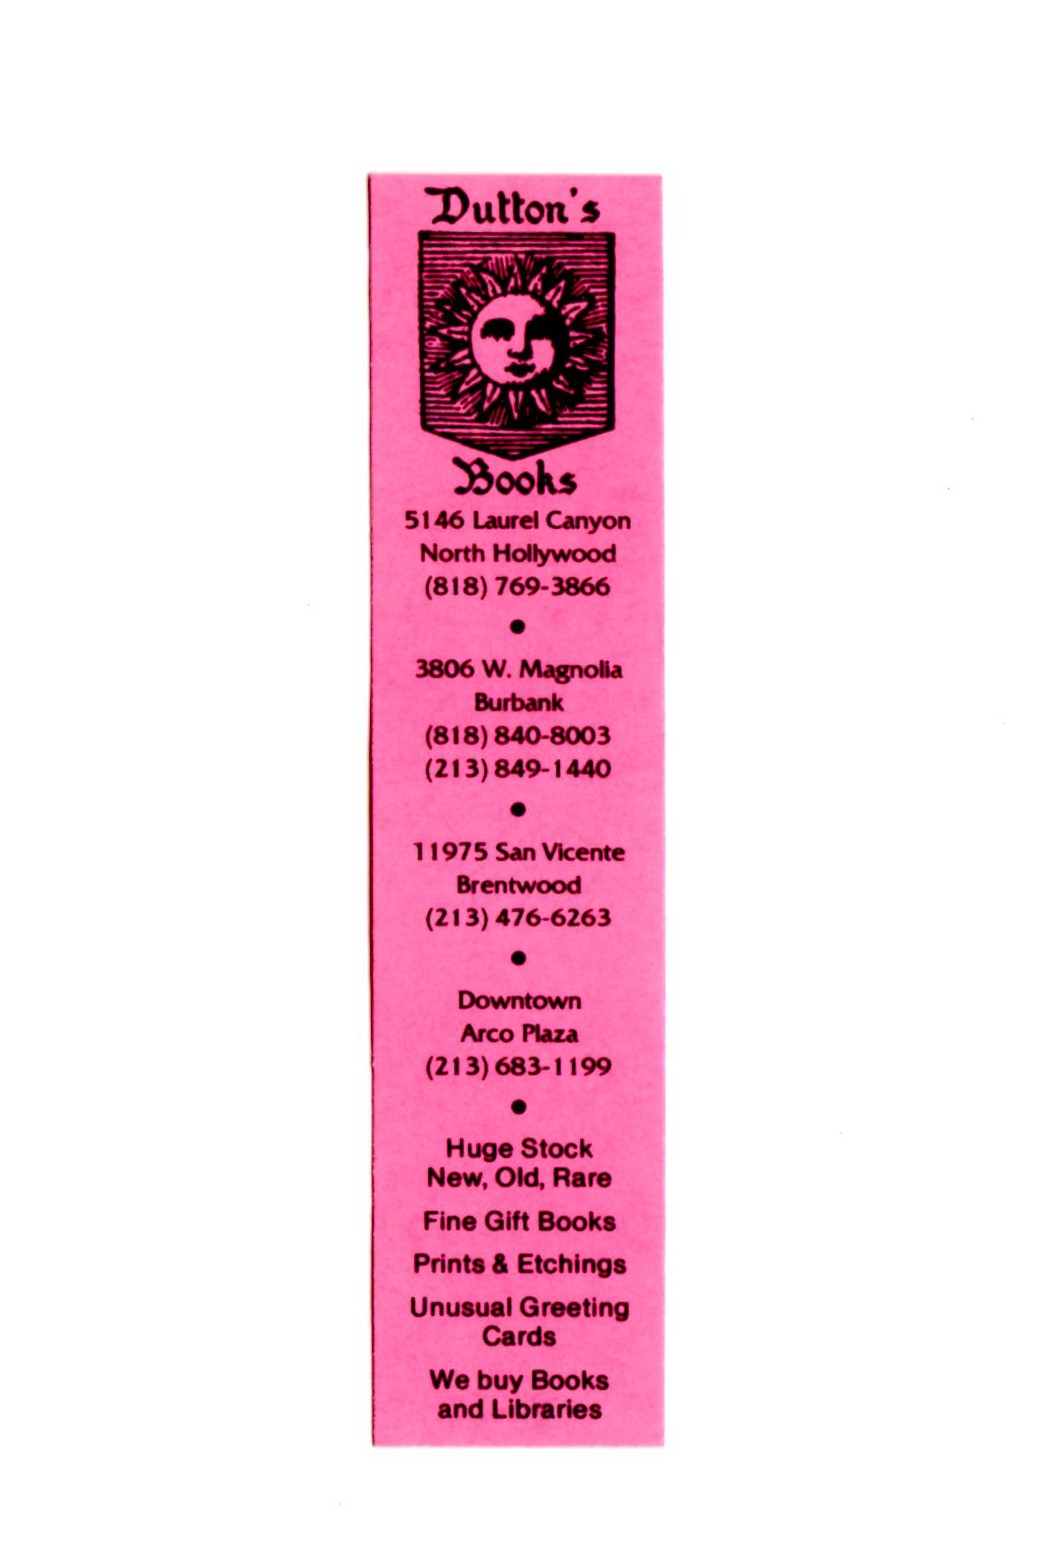 Dutton's Bookmark with all stores listed.